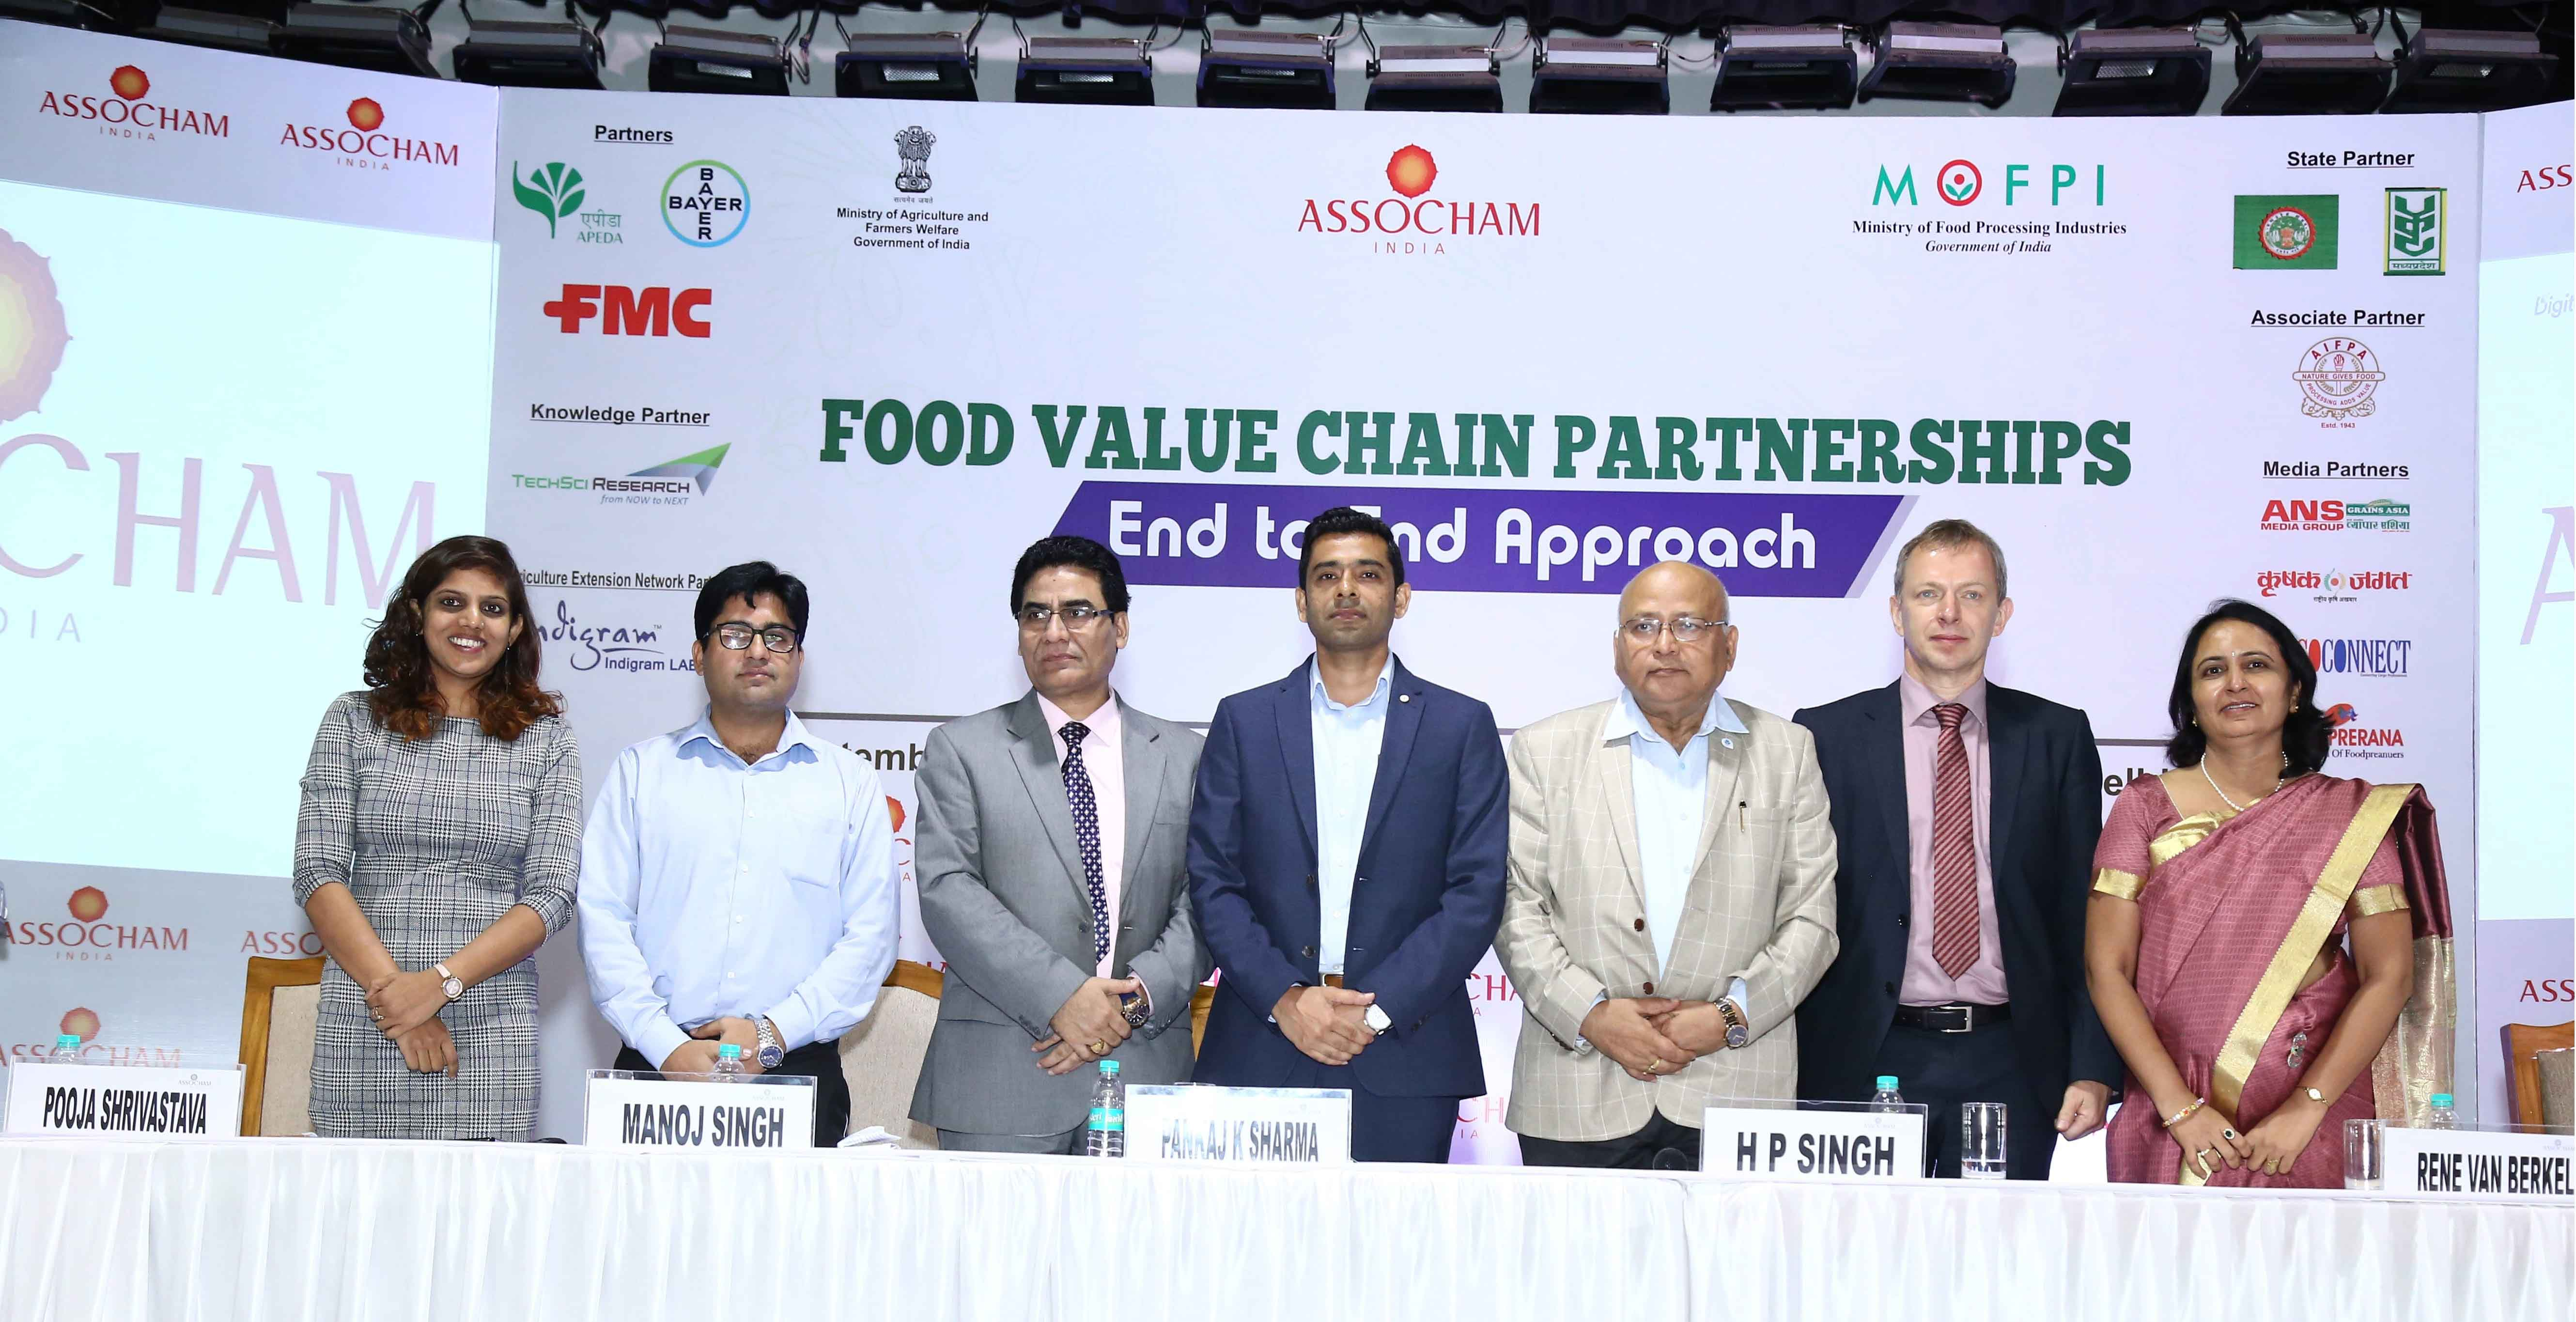 Food Value Chain Partnerships – End to End Approach by ASSOCHAM